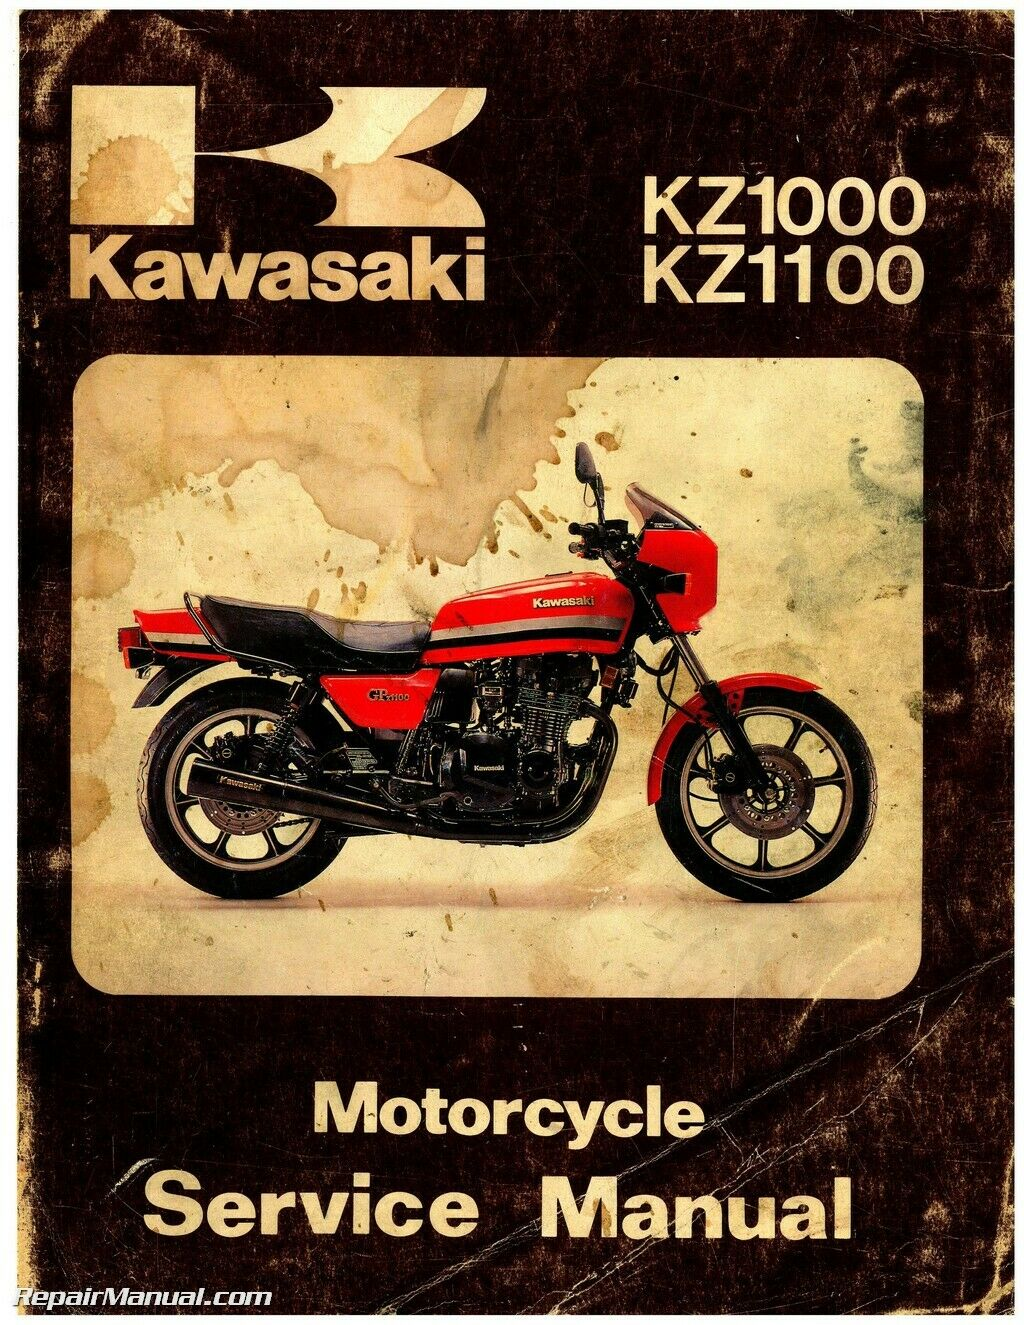 Kawasaki Kz1000p Wiring Diagram Trusted Diagrams 1982 Kz650h 1981 Kz1000 Kz1100 Motorcycle Repair Service Manual Household Basics